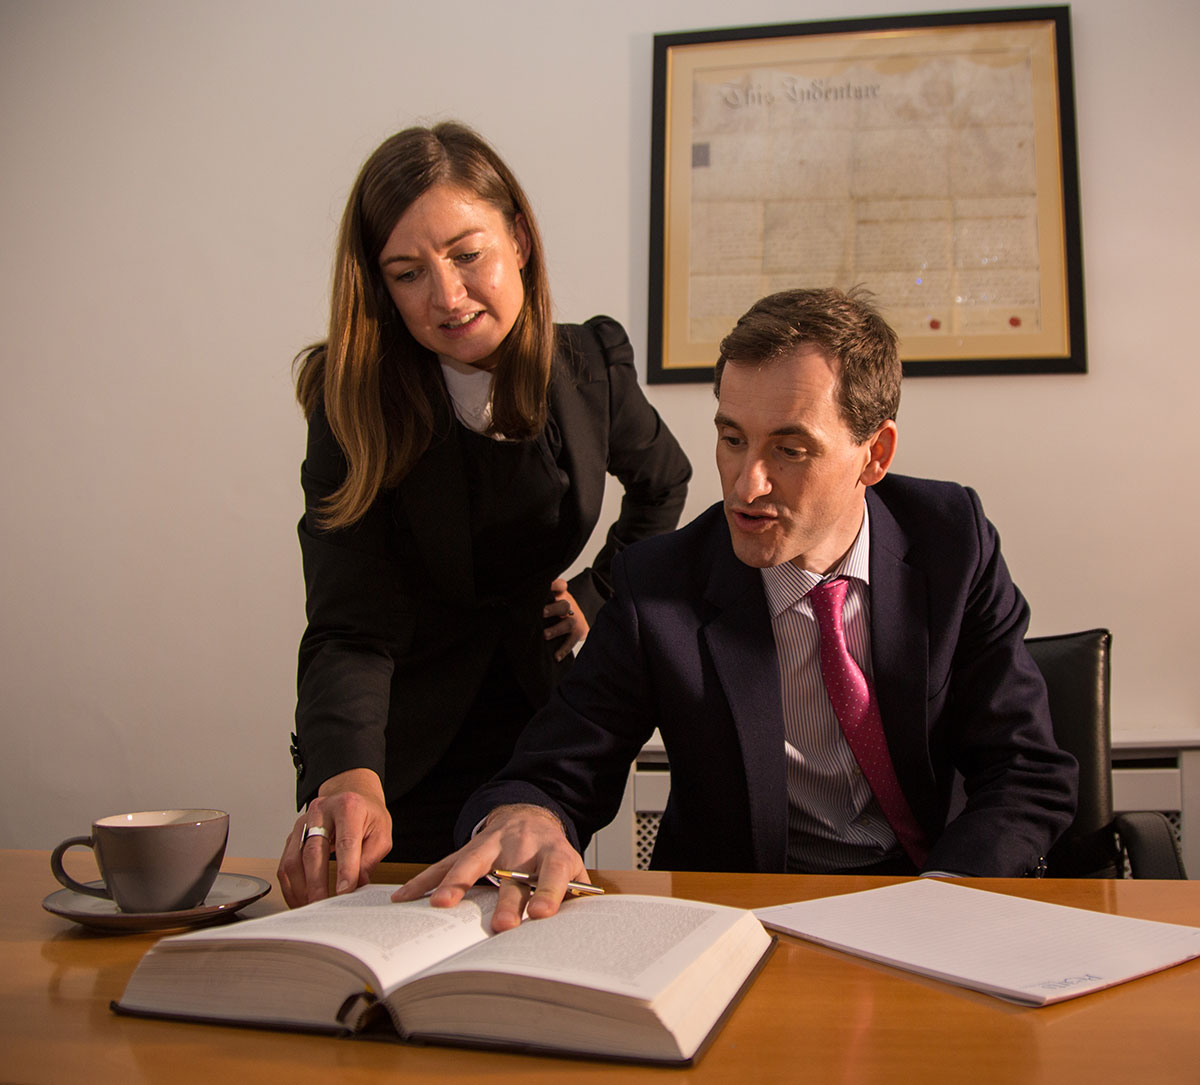 Solicitors AnnMarie Lynch and Tadgh Kelly